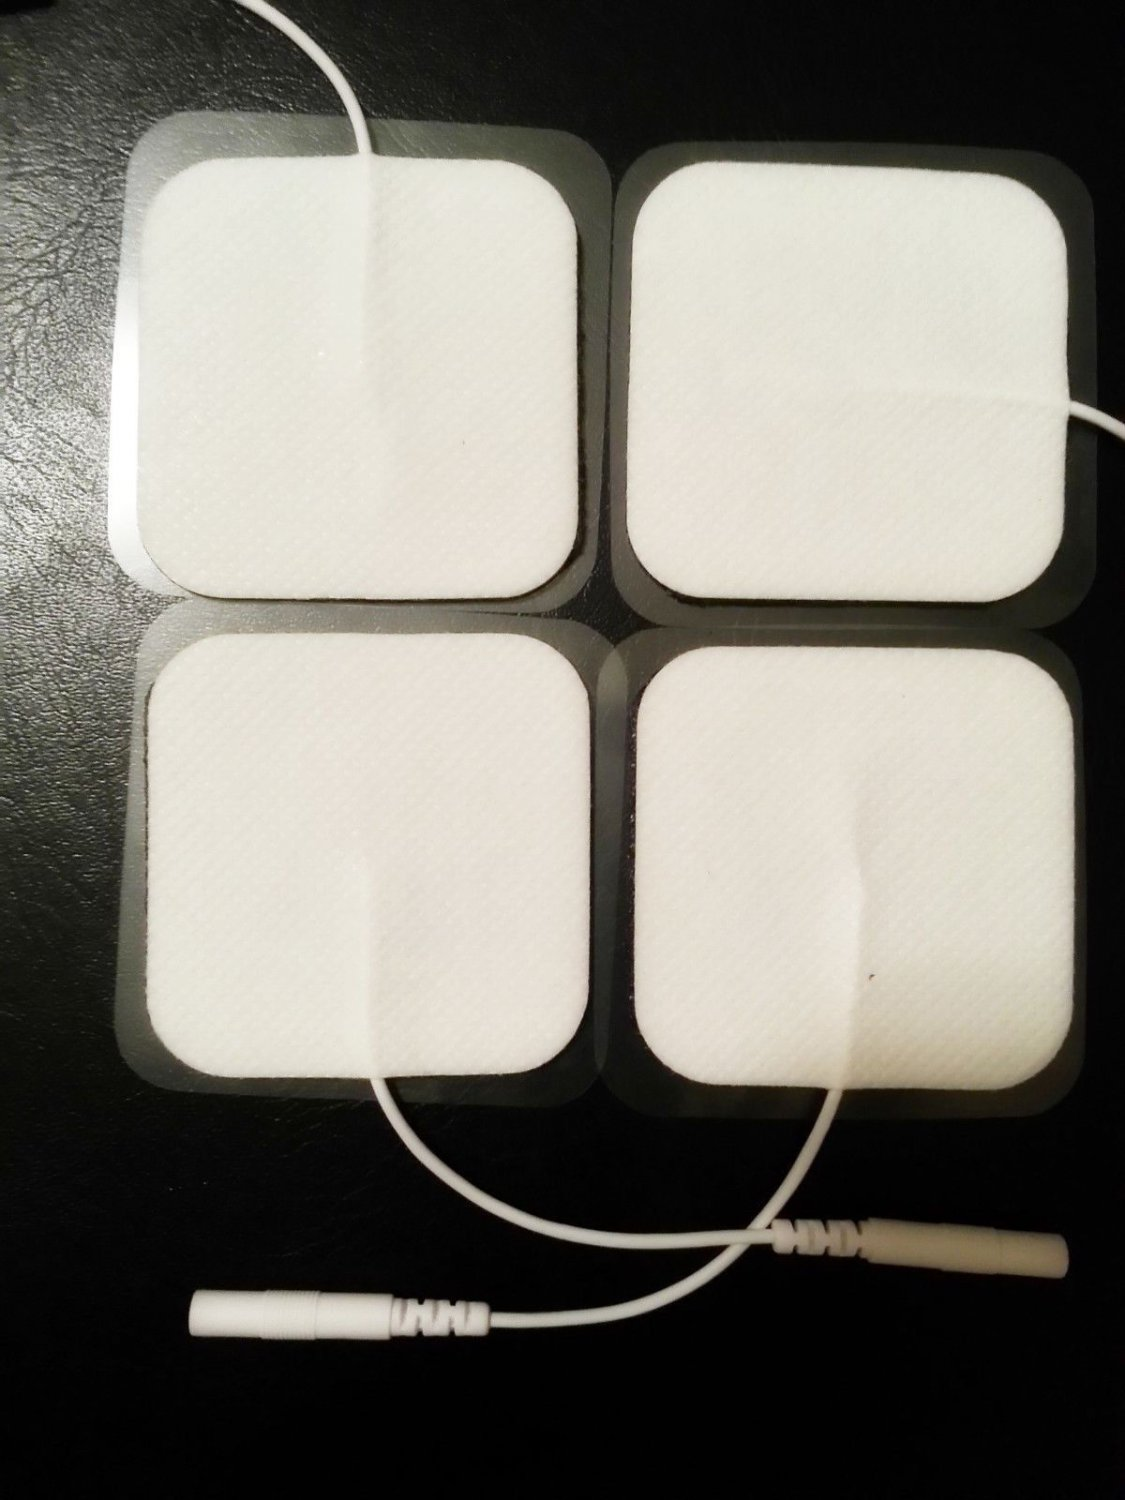 "SQUARE SHAPED GEL ELECTRODES(8)SELF ADHESIVE MASSAGE PADS 2""X2"" FOR THERAPY TENS"